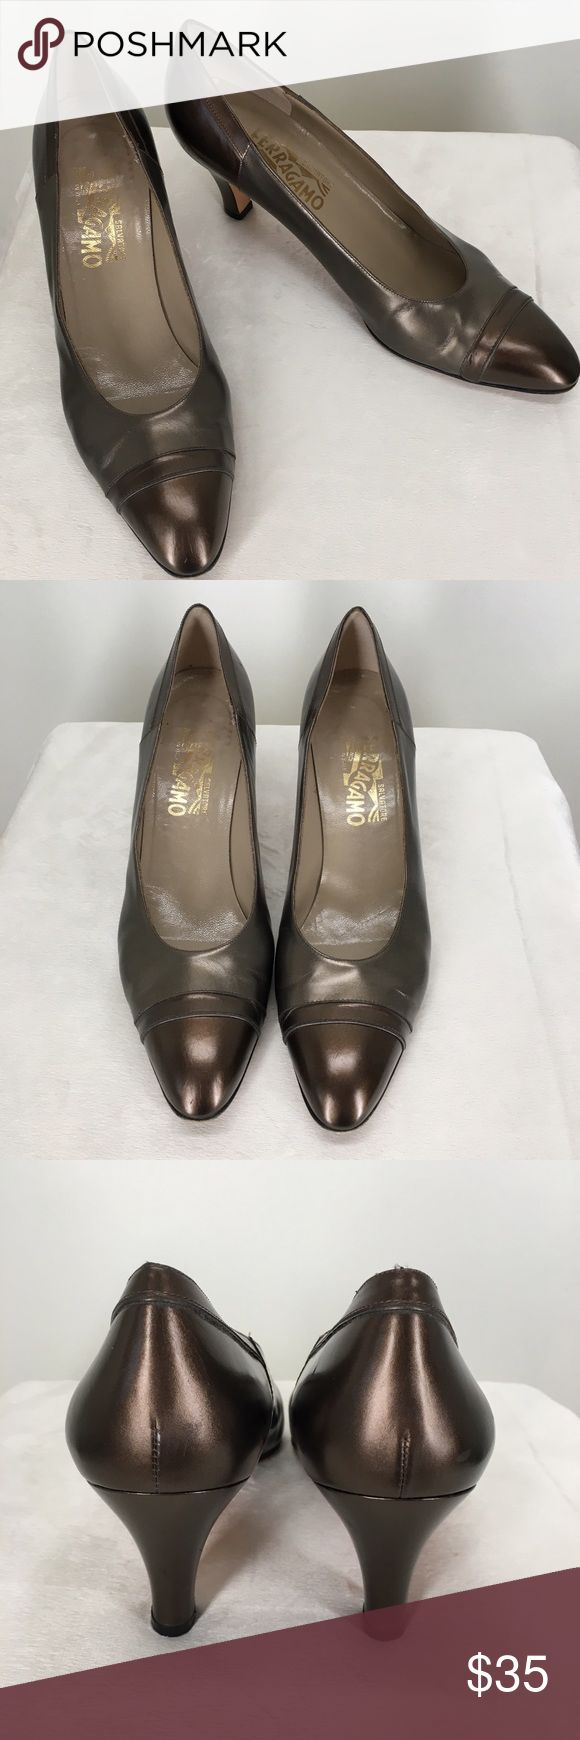 """Salvatore Ferragamo Italian Two Tone Heels Two tone copper pumps with oxford like detail on front and heel. Inside says """"DF 38238 360 10AA"""". Made in Italy. Pre worn condition as seen in pictures, but lots of life left in these shoes!  Heel height-3"""" Size-10AA Salvatore Ferragamo Shoes Heels"""